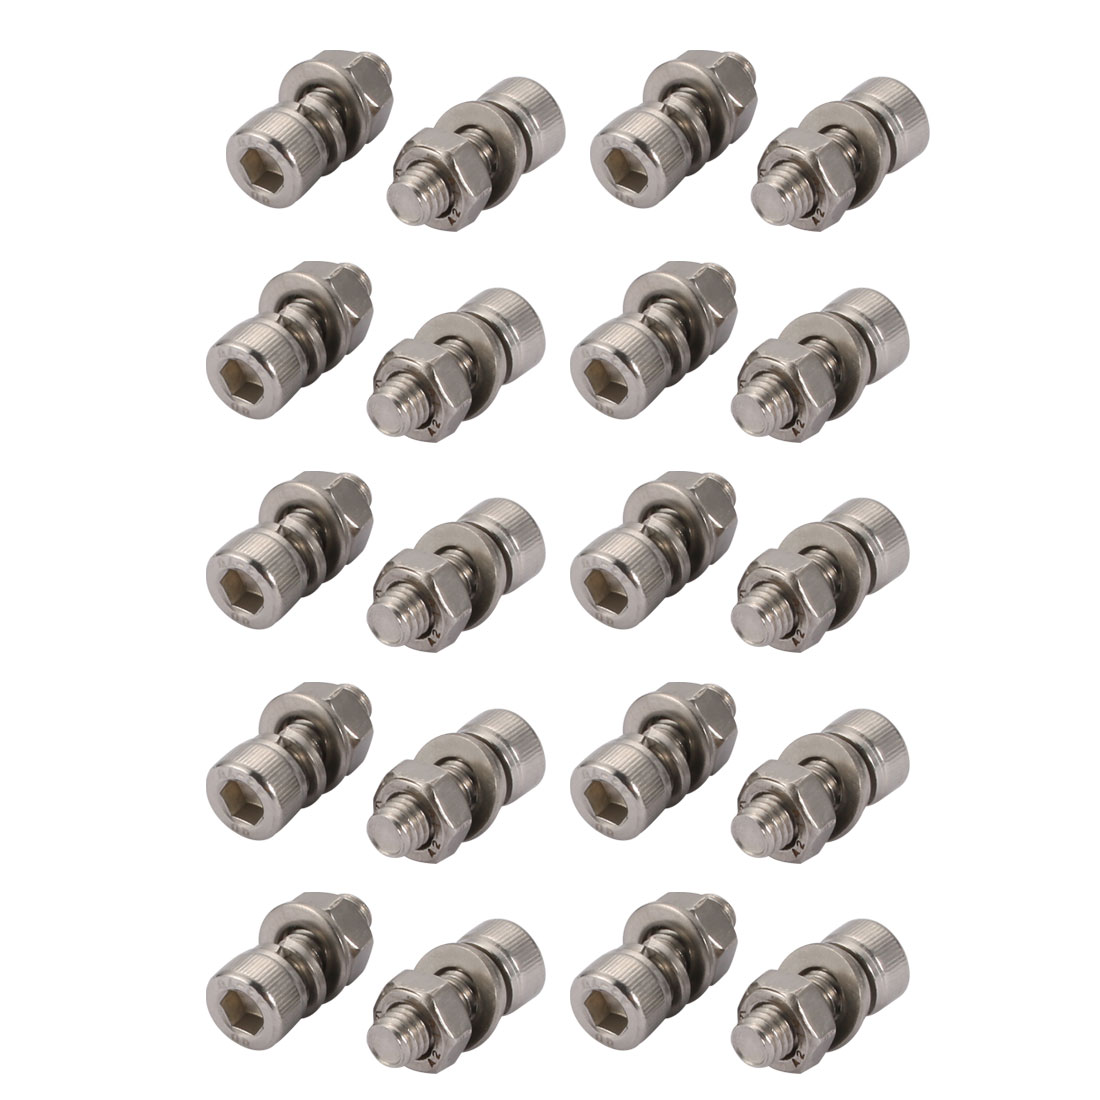 20Pcs M6x16mm 304 Stainless Steel Knurled Hex Socket Head Bolt Nut Set w Washer